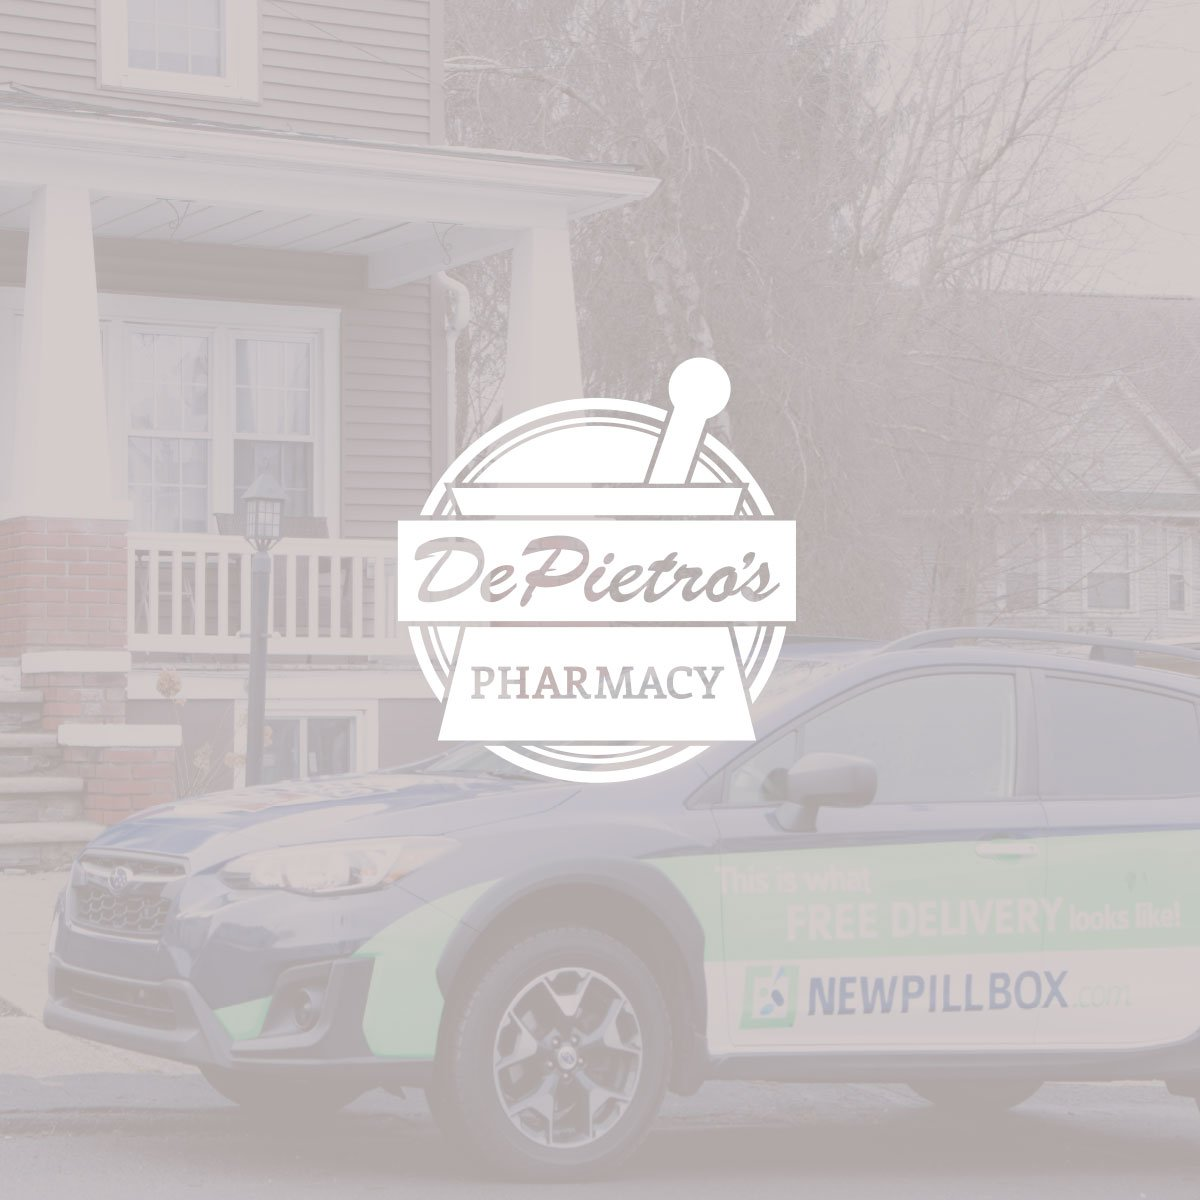 logo overlaying image of delivery vehicle designed for DePietro's Pharmacy brand